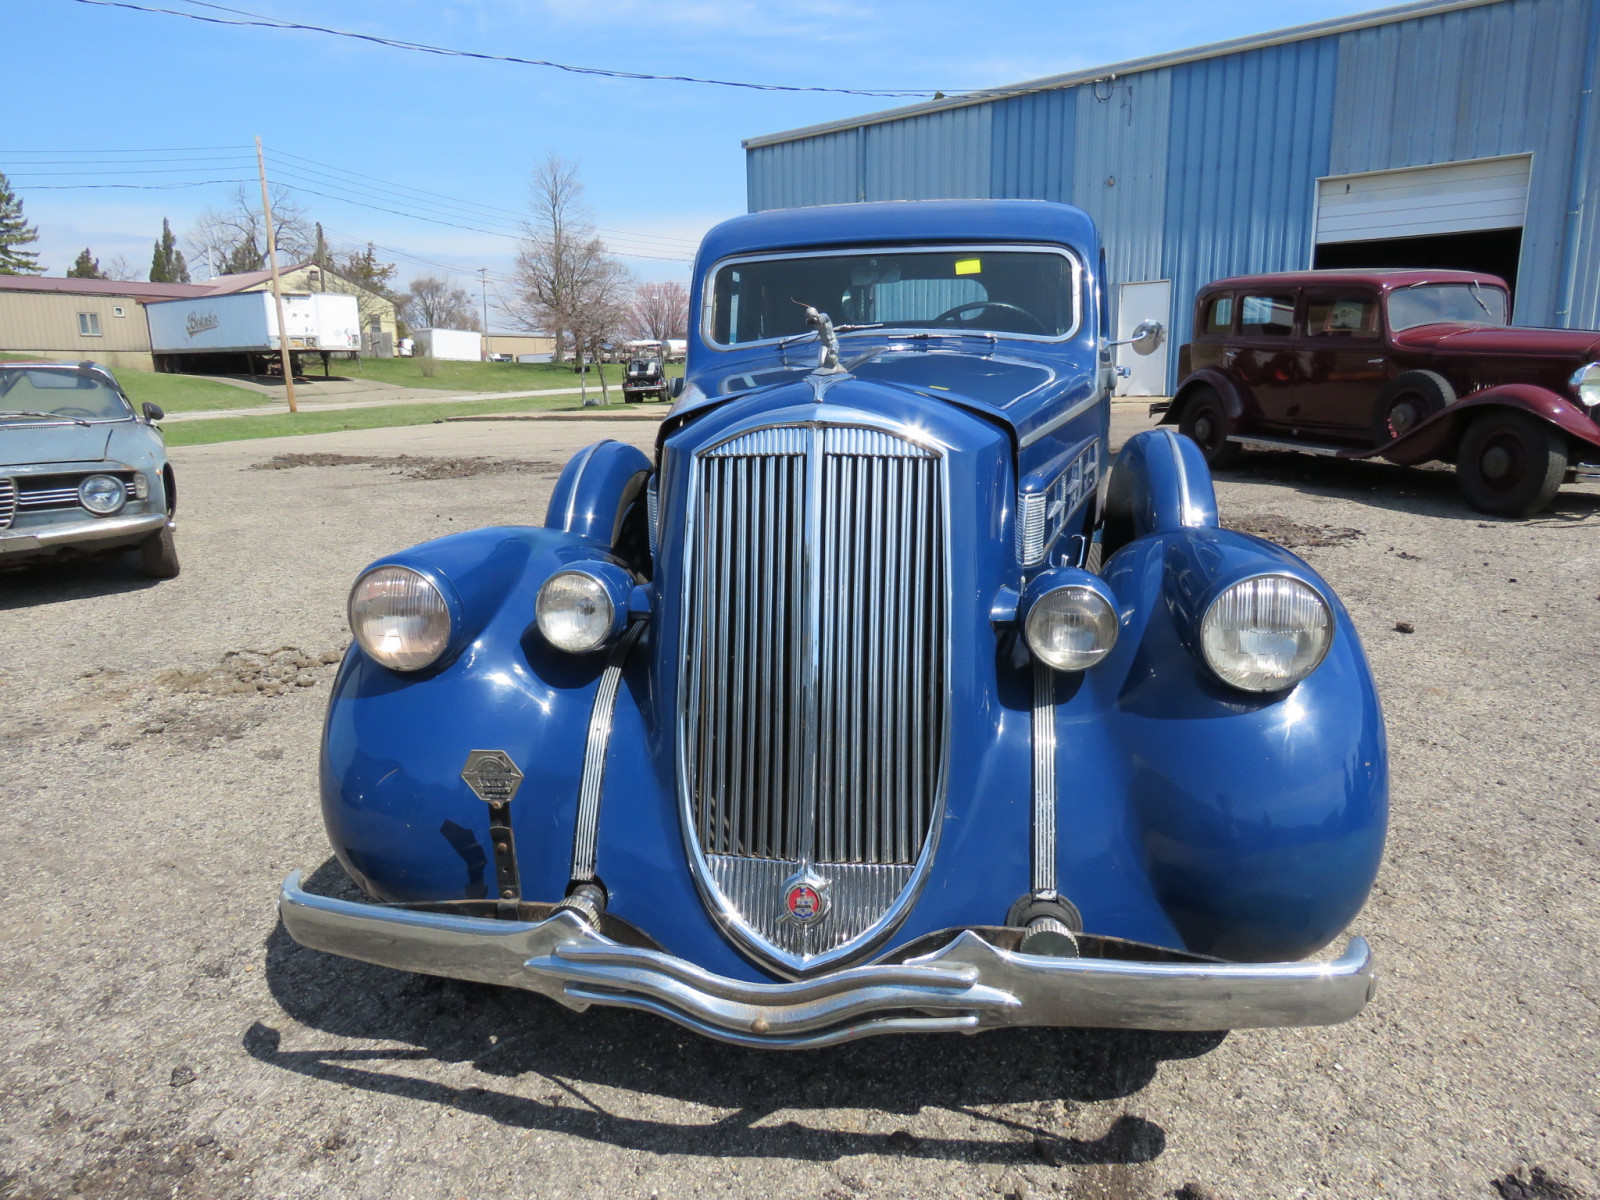 1936 Pierce Arrow V12  Series 1602 5 Passenger Sedan - Image 2